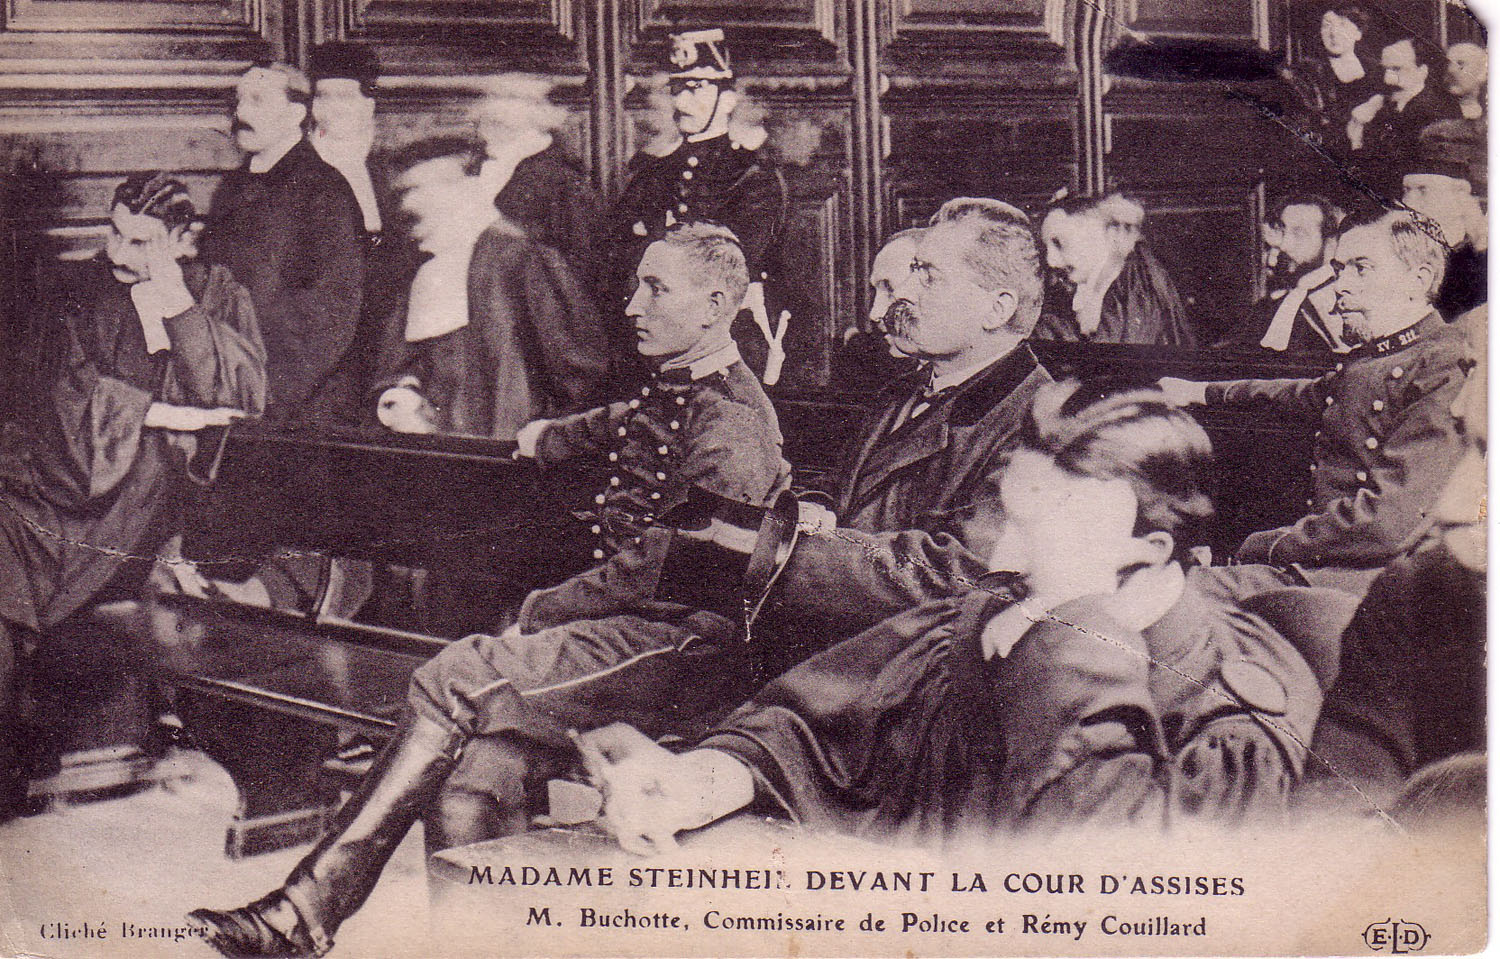 Madame Steinheil's trial at the Court of Assises